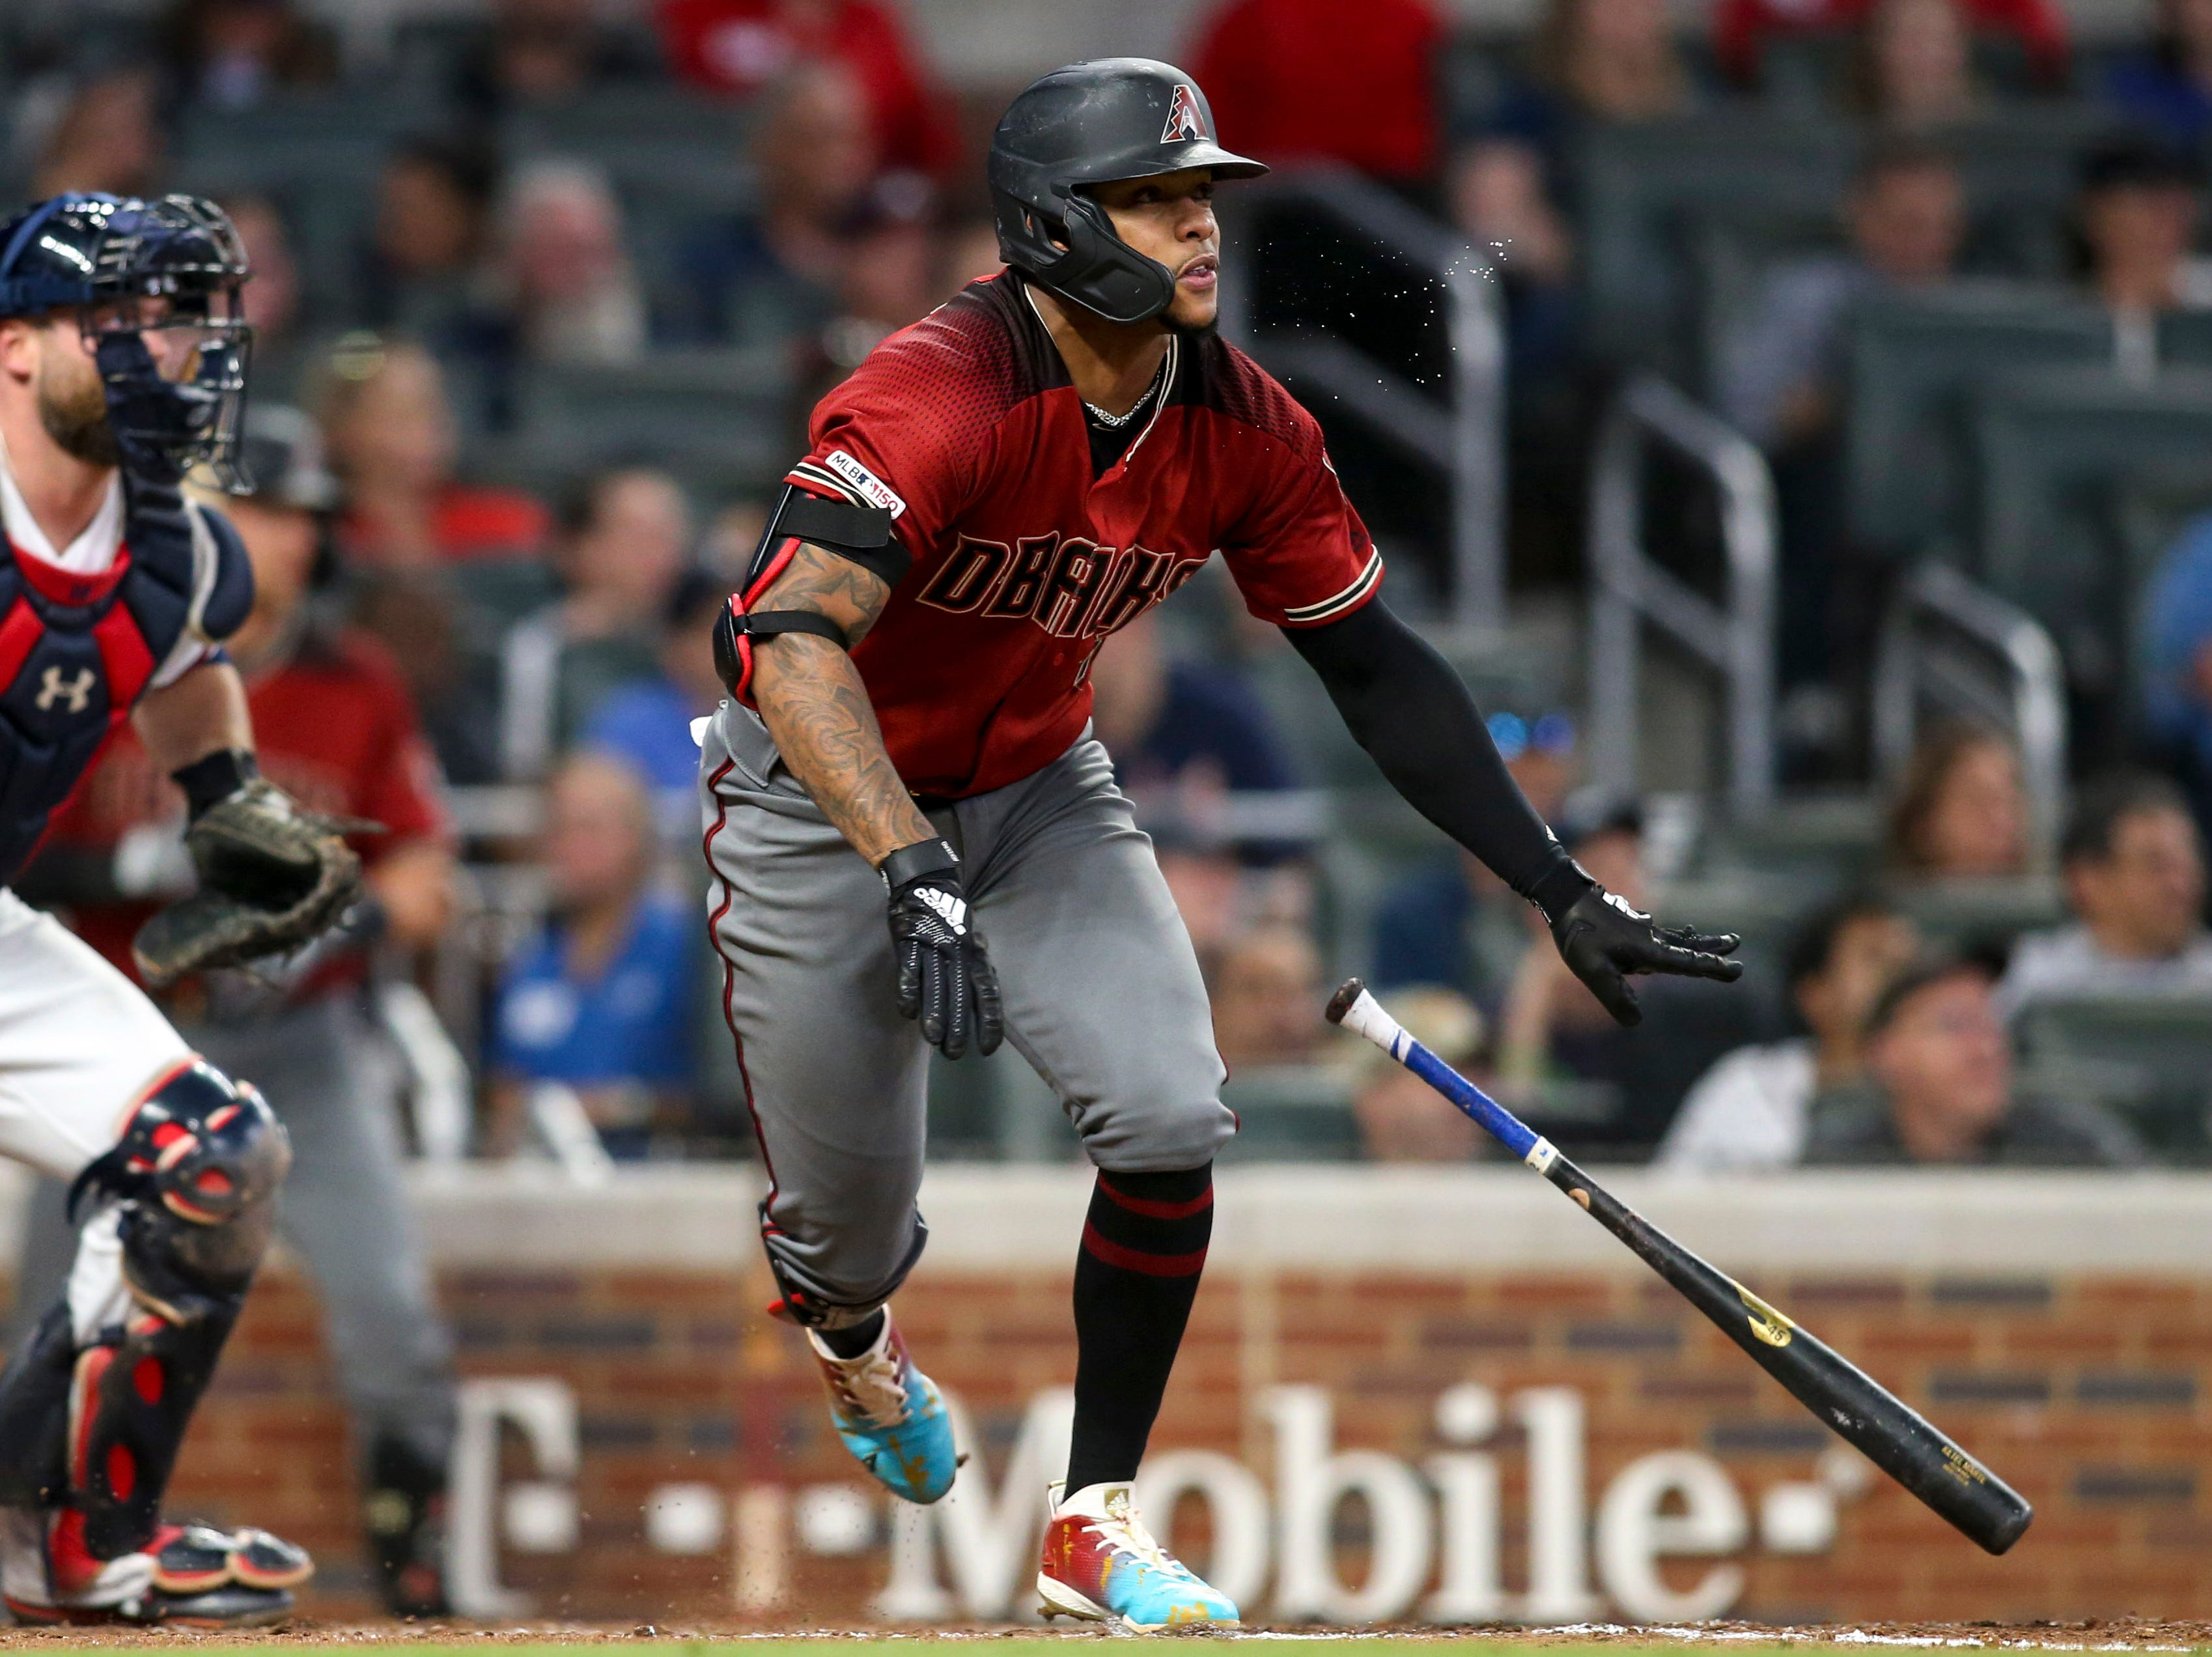 Apr 17, 2019; Atlanta, GA, USA; Arizona Diamondbacks second baseman Ketel Marte (4) hits a RBI double against the Atlanta Braves in the seventh inning at SunTrust Park. Mandatory Credit: Brett Davis-USA TODAY Sports